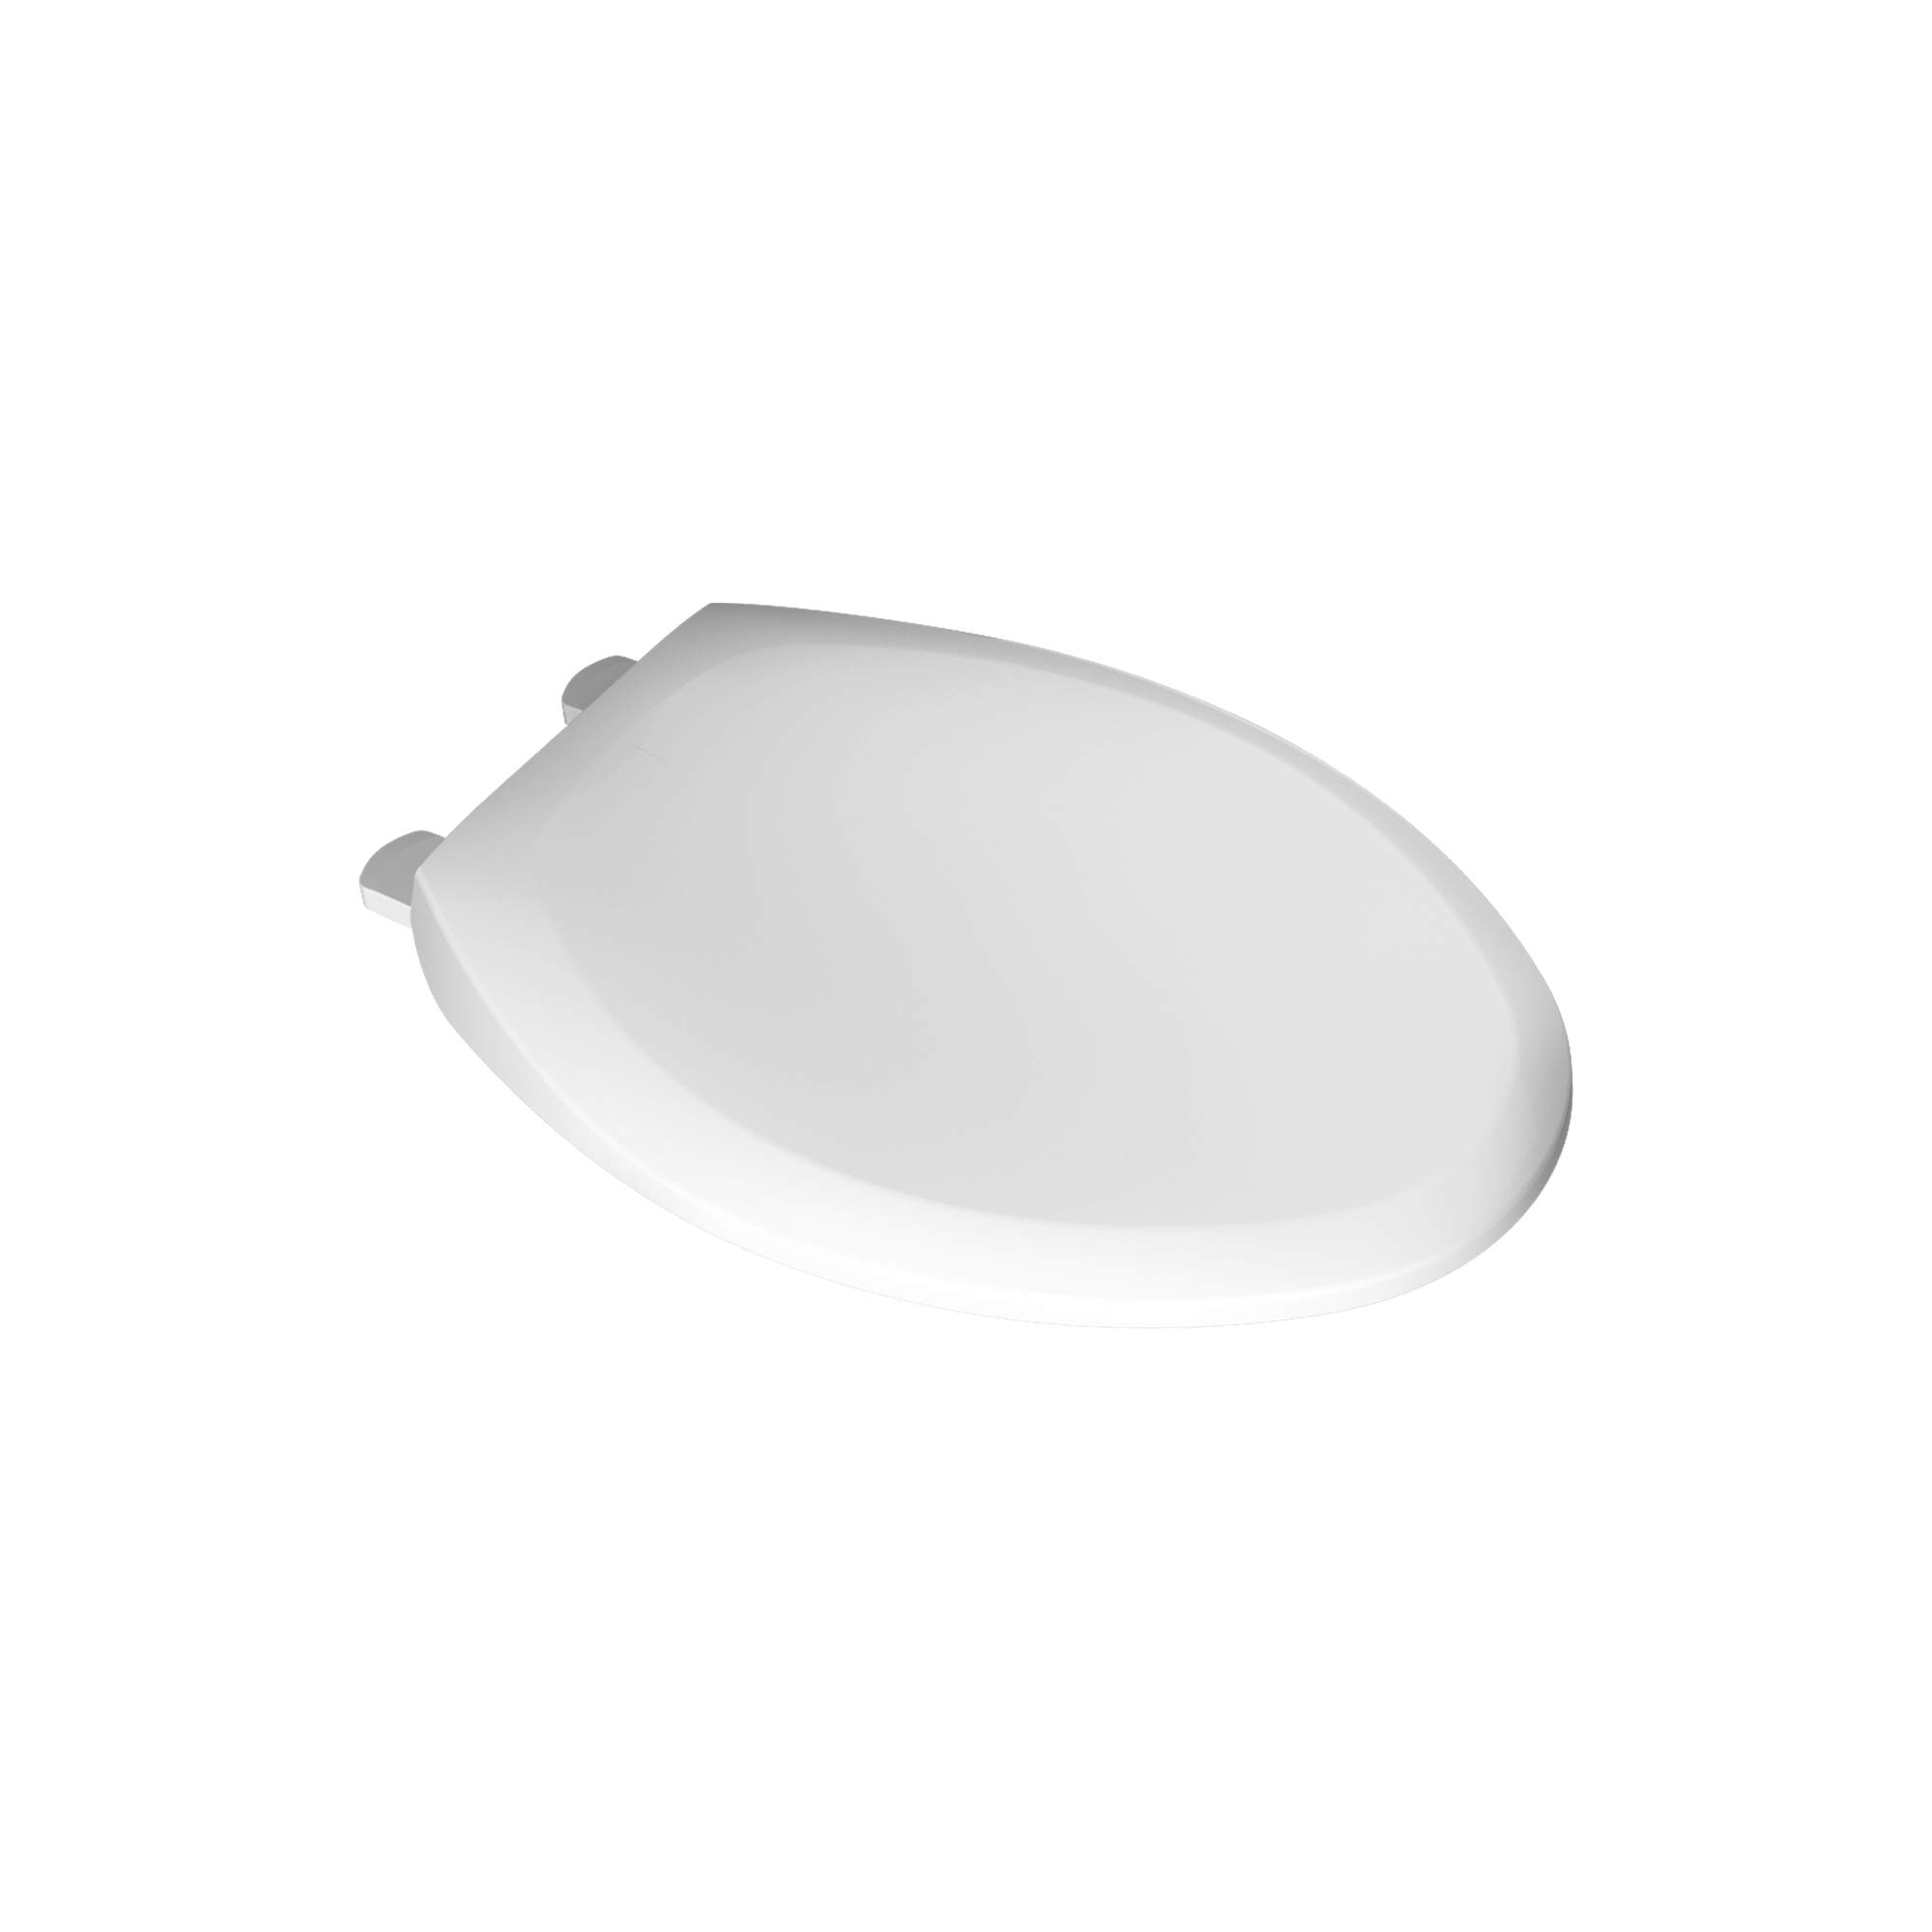 American Standard 5321A65CT.020 Champion Slow-Close Elongated Toilet Seat, White